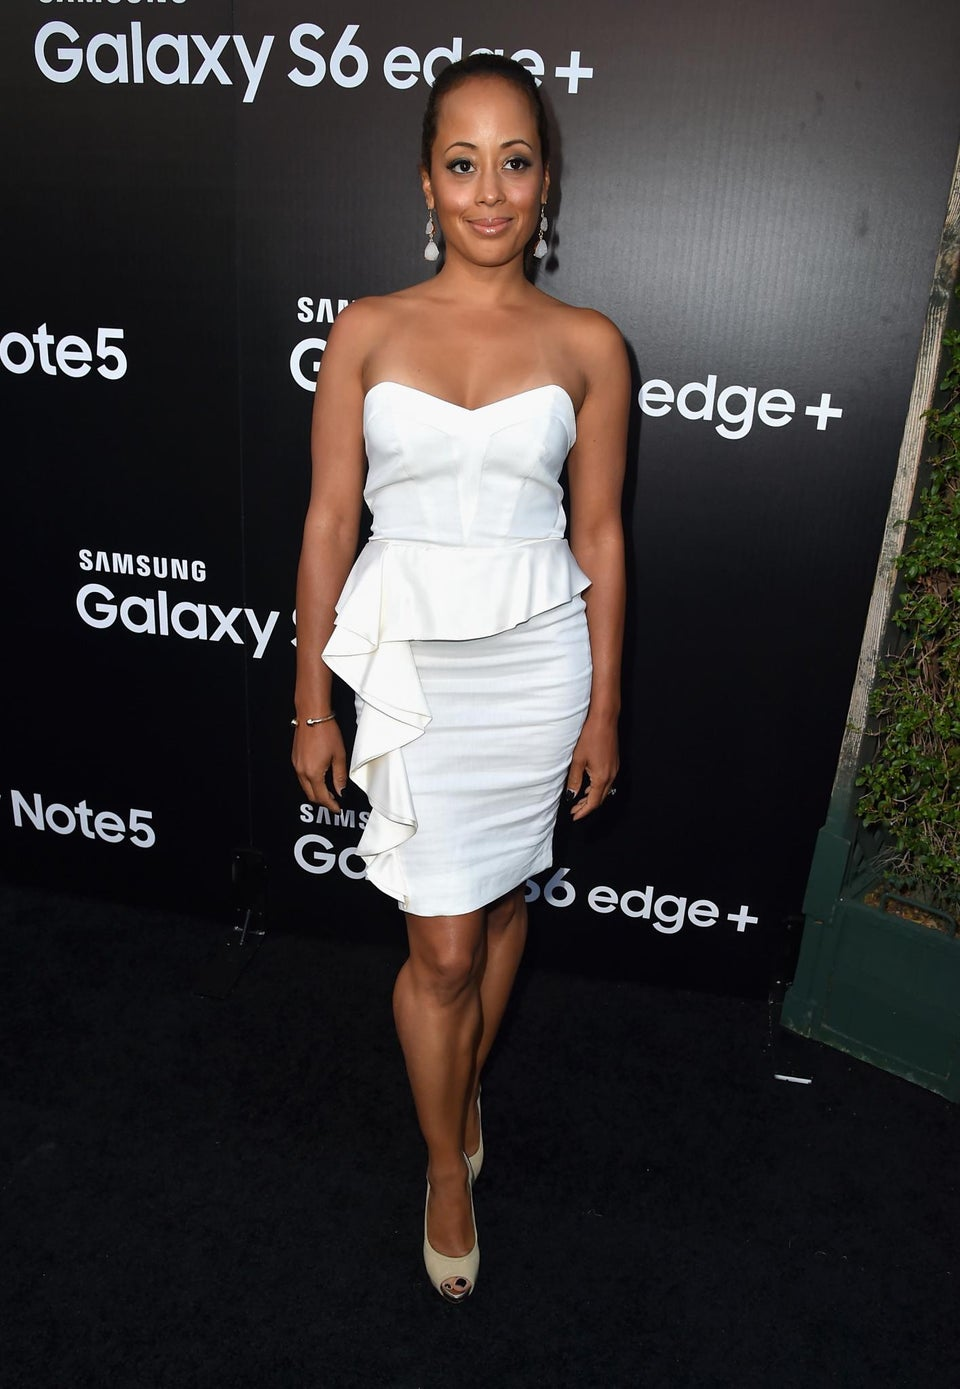 Essence Atkins Washes Woman's Feet in Act of Sisterhood